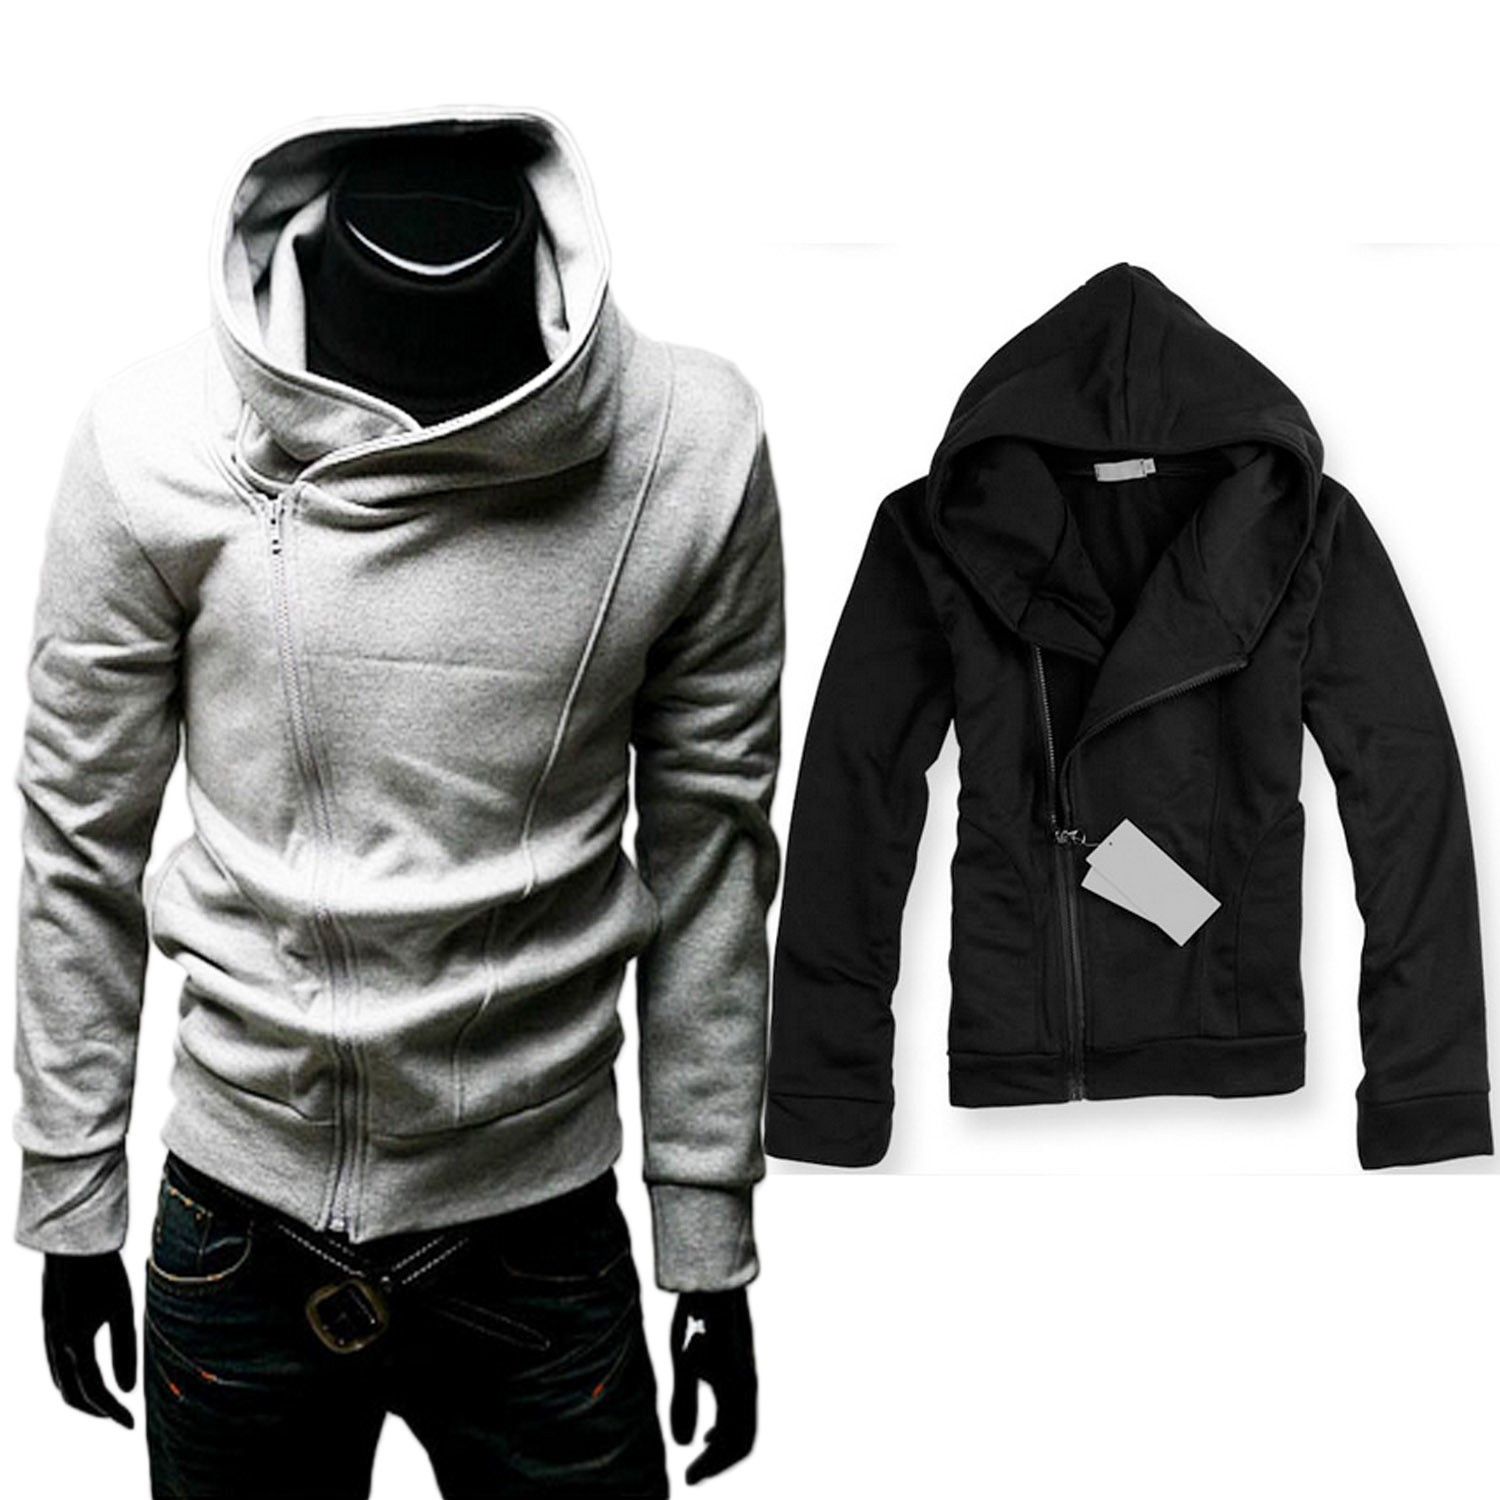 Black/Grey NEW Sweater Casual Unisex Zip Mens Jacket Blazer Outerwear Sz XS-L